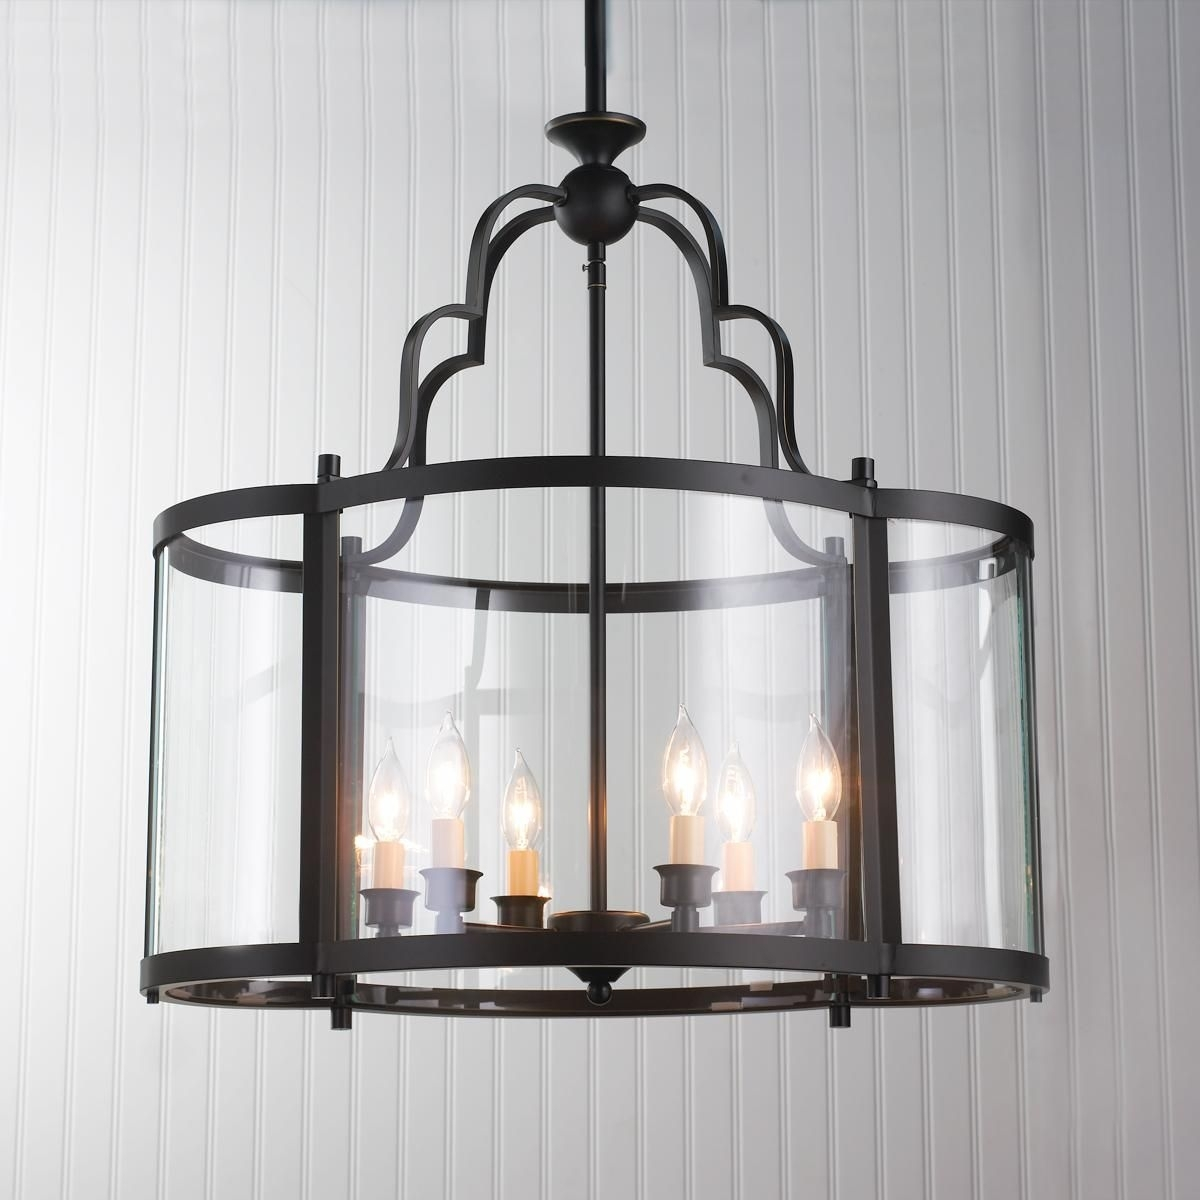 Oval Quatrefoil Lantern – Large A New Twist On A Classic Glass Pertaining To Extra Large Outdoor Hanging Lights (#12 of 15)